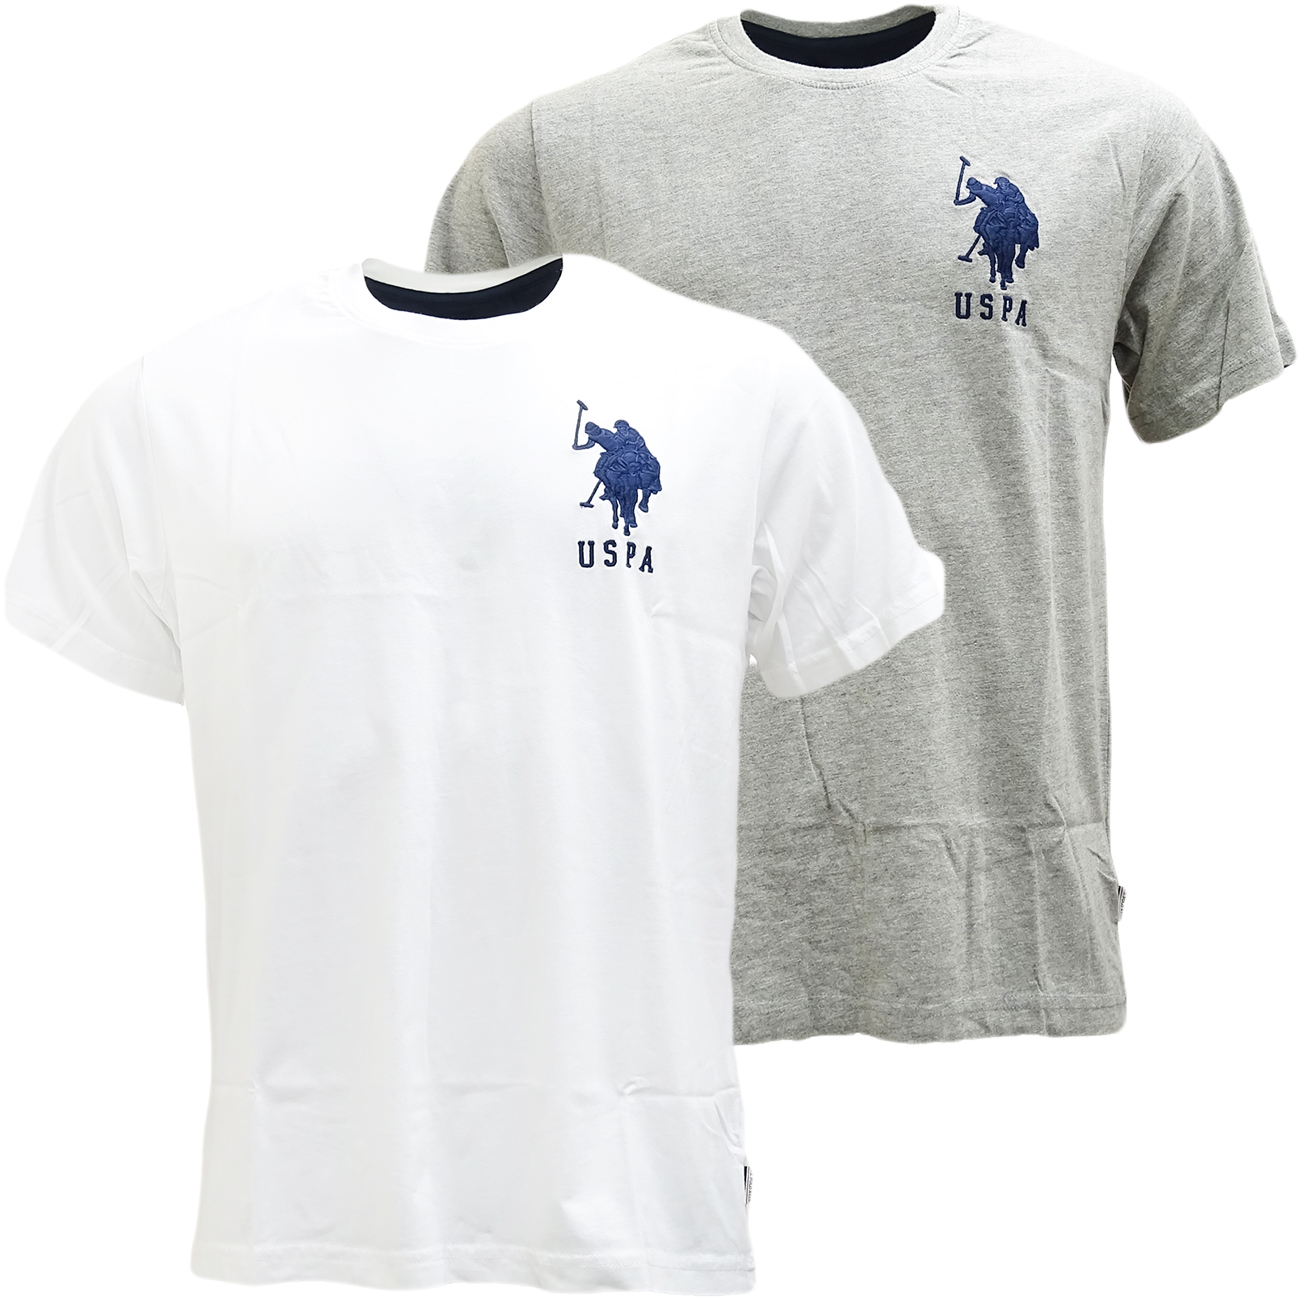 Which clothes company has a horse logo?